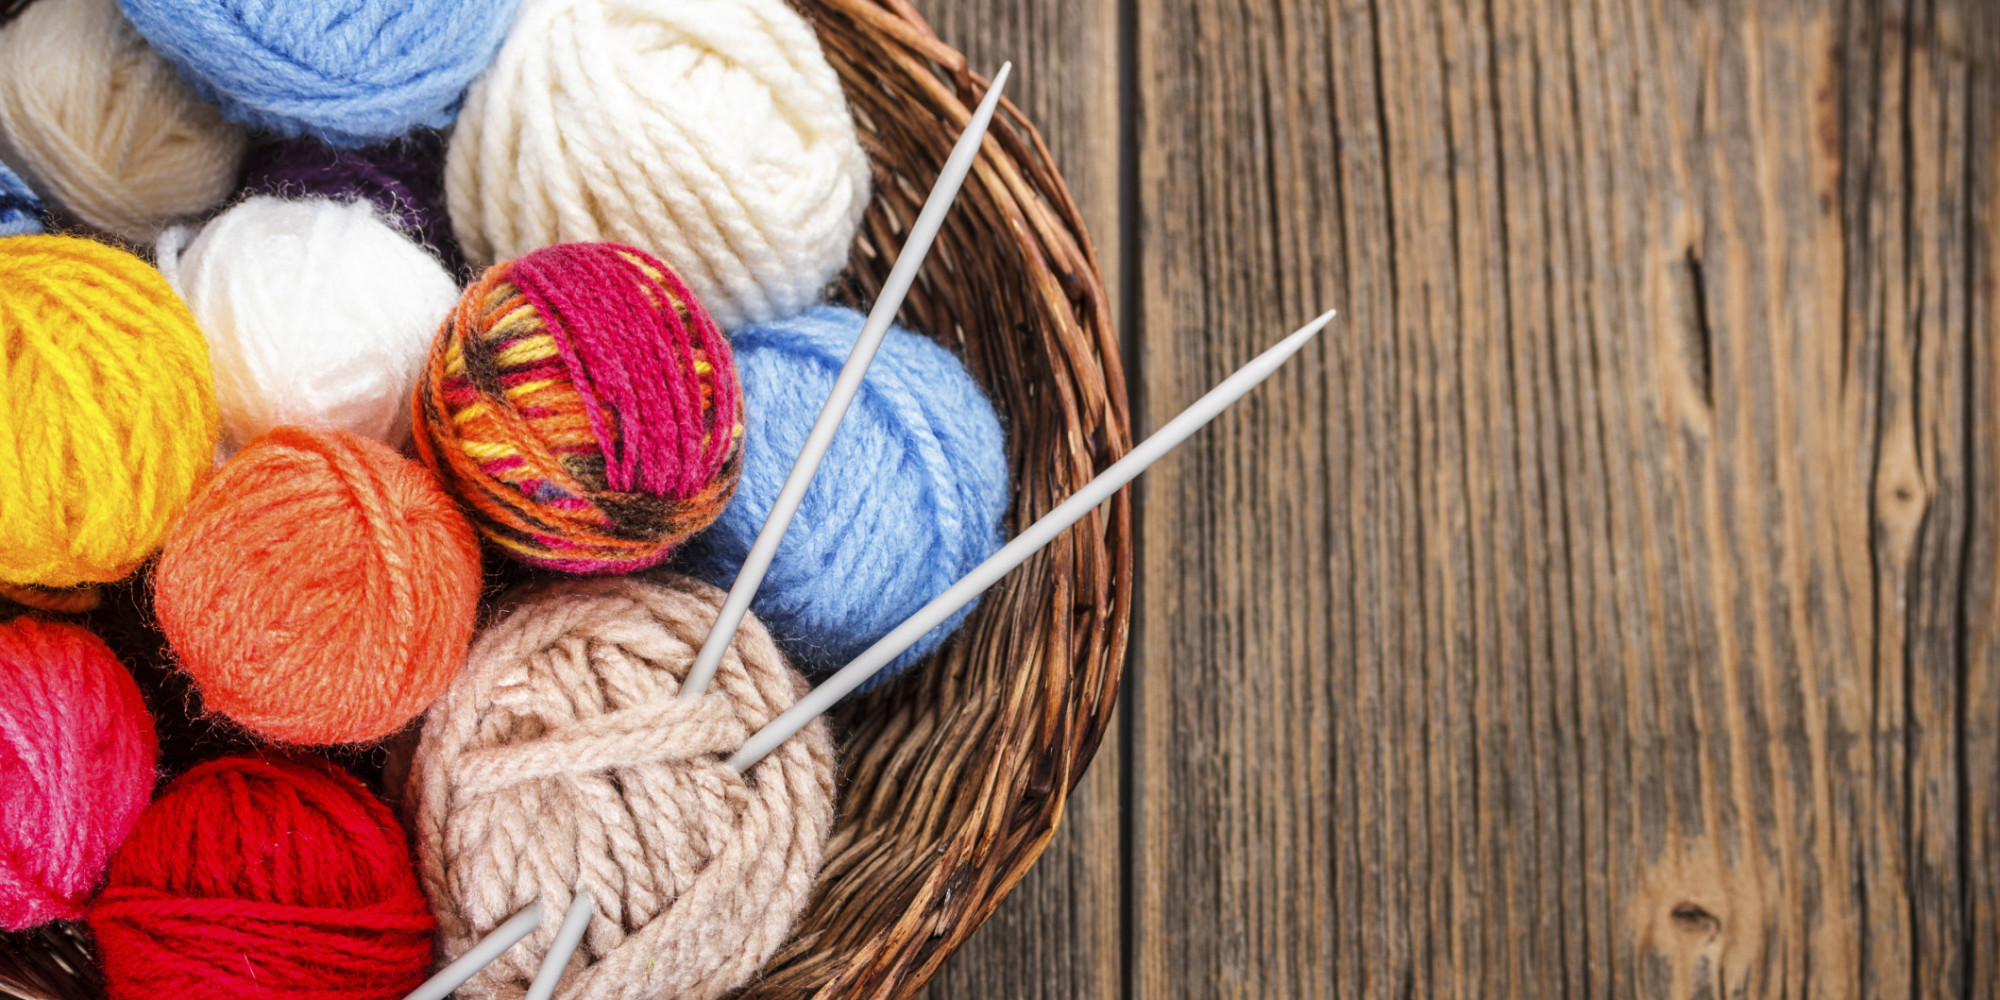 Knitting Club Book : Why knitting is the must have life skill huffpost